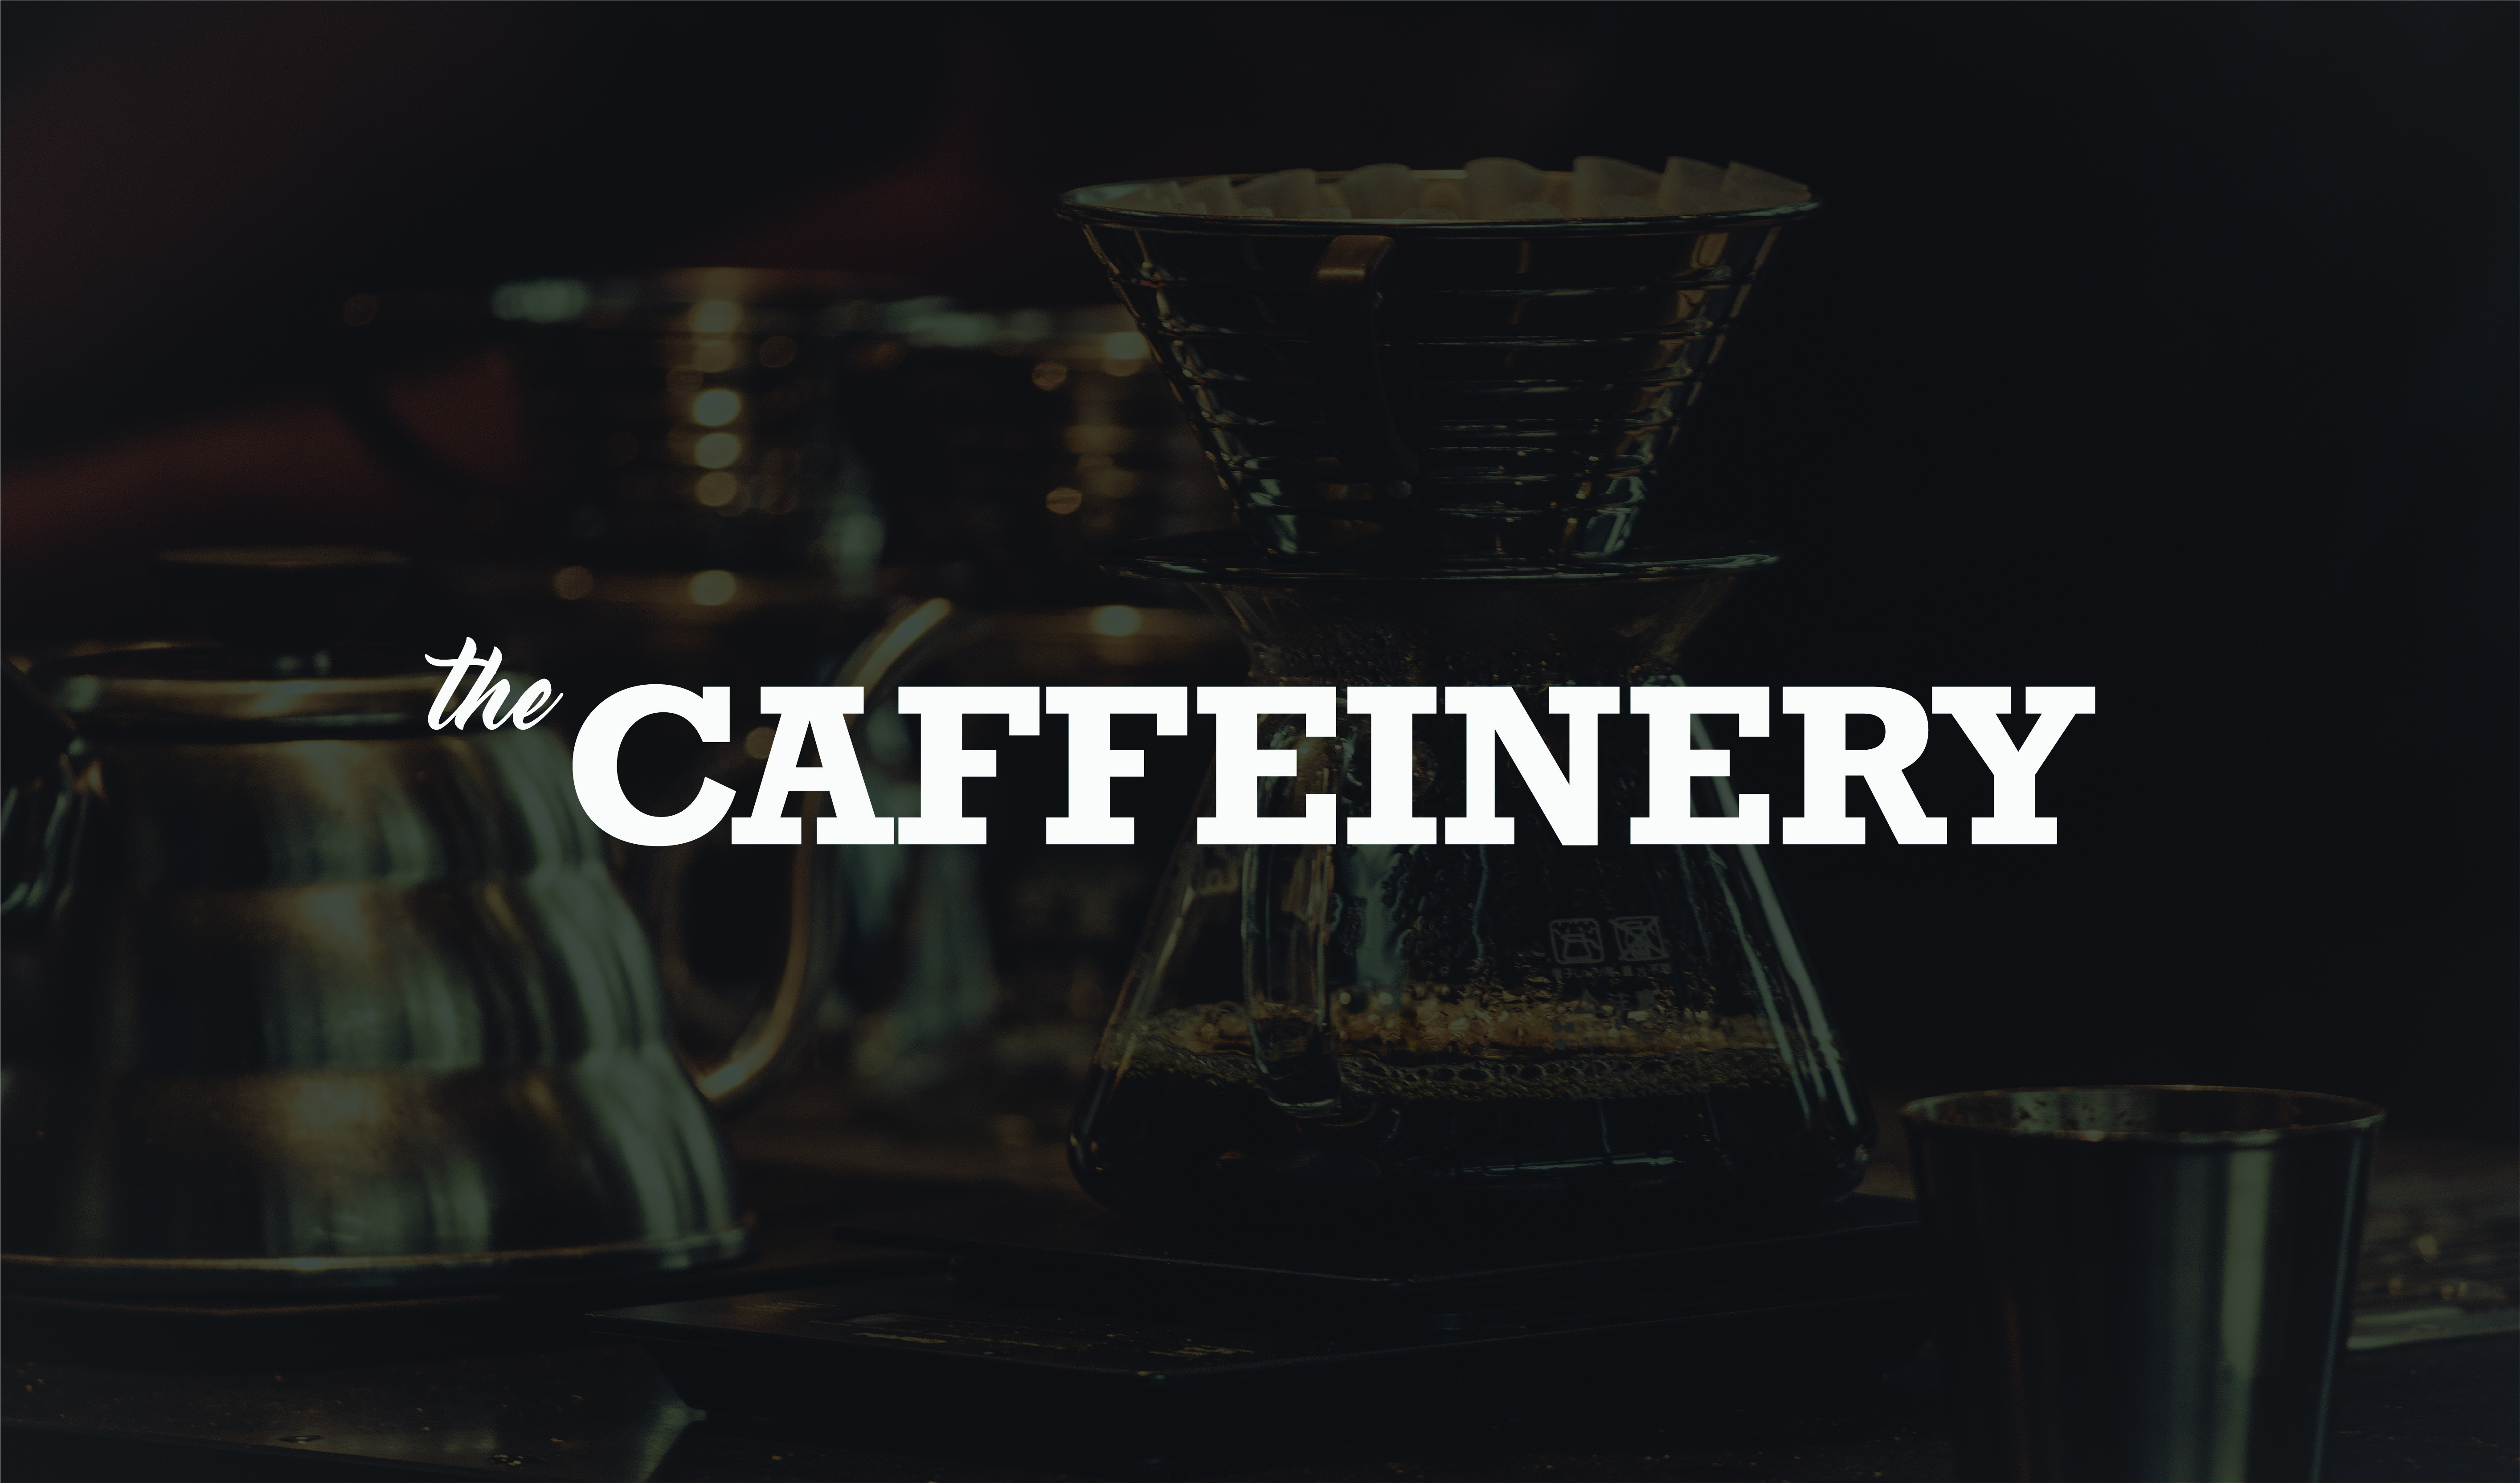 TheCaffeinery_icon-01